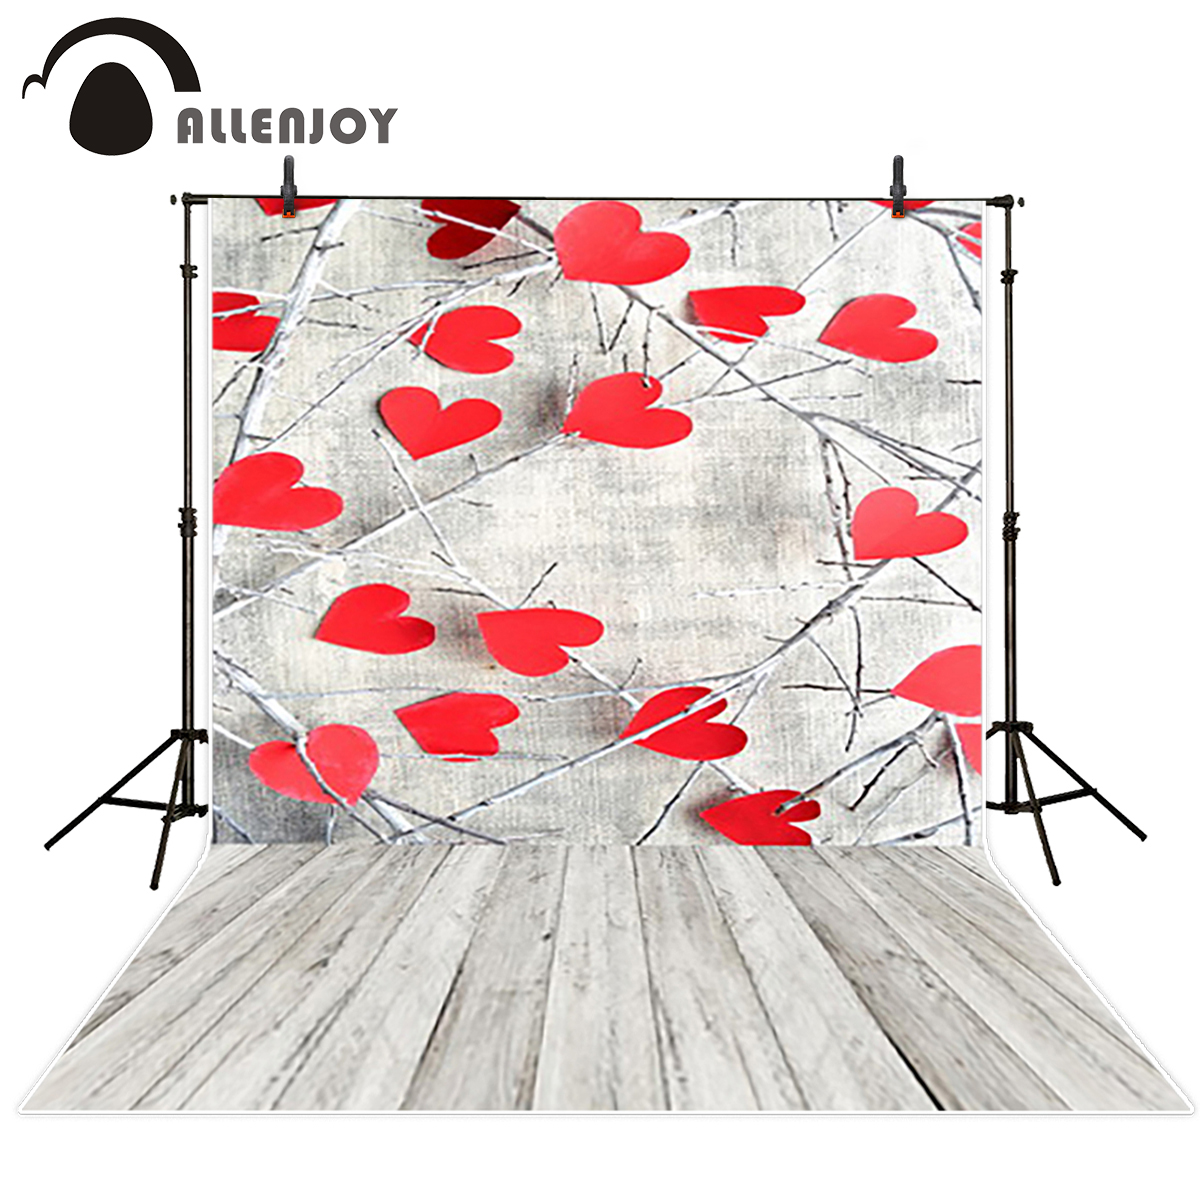 Allenjoy photography backdrops Love white wood board floor red hearts branches Valentine 's Day wedding photo booth profissional ведро под швабру every day enjoy the qq qq